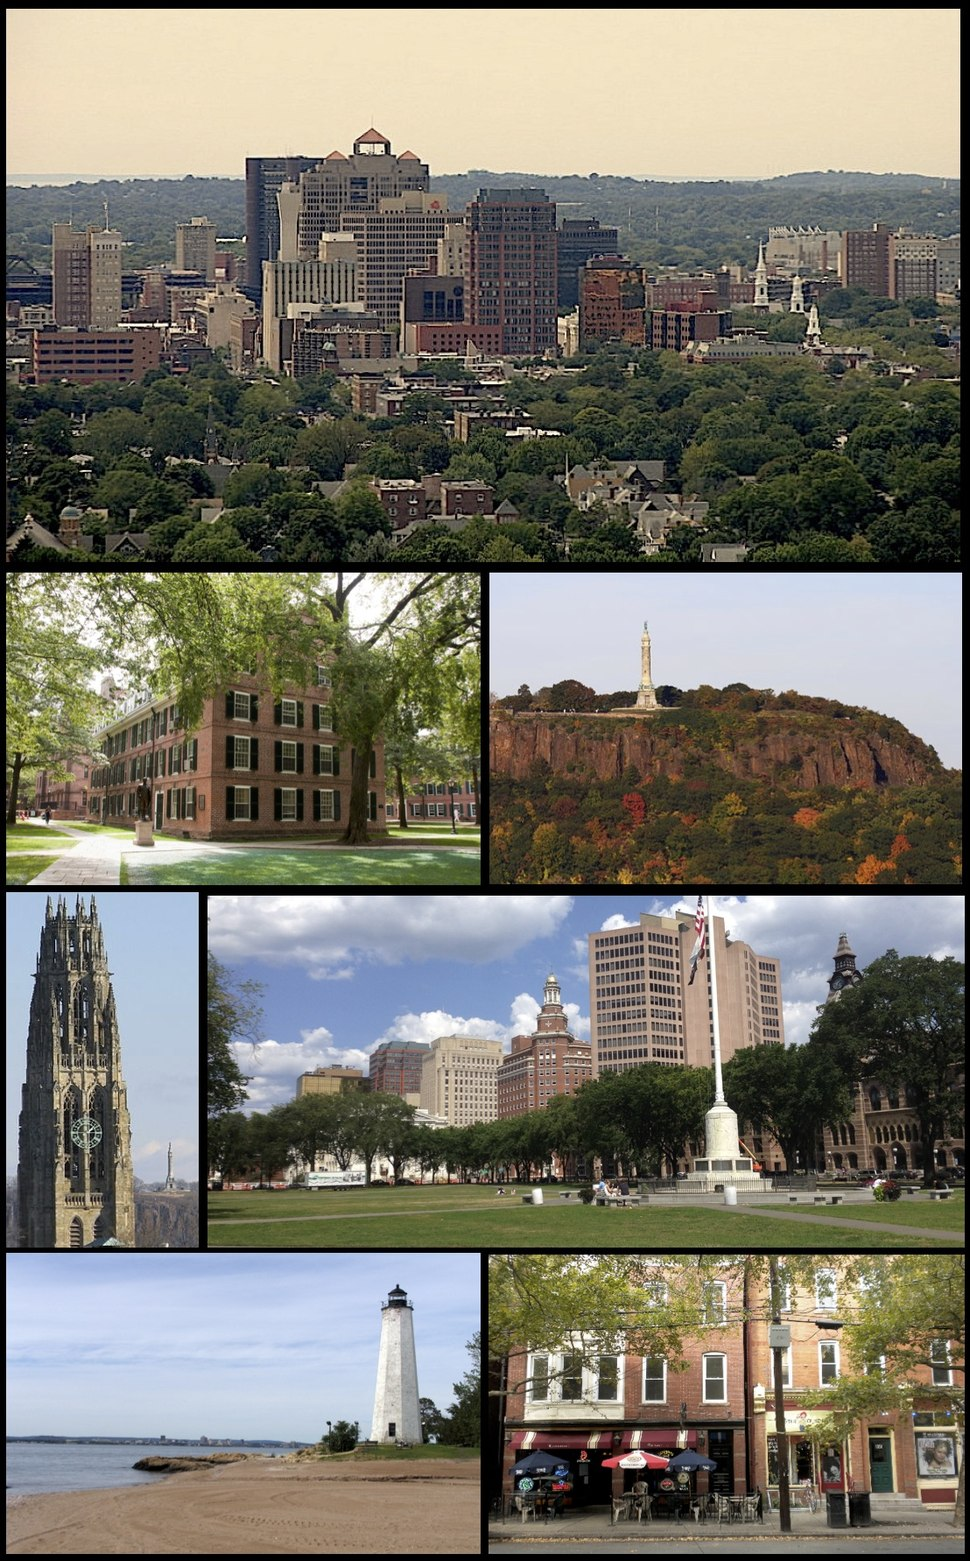 Clockwise from top: downtown New Haven skyline, East Rock Park, summer festivities on the New Haven Green, shops along Upper State Street, Five Mile Point Lighthouse, Harkness Tower, and Connecticut Hall at Yale.